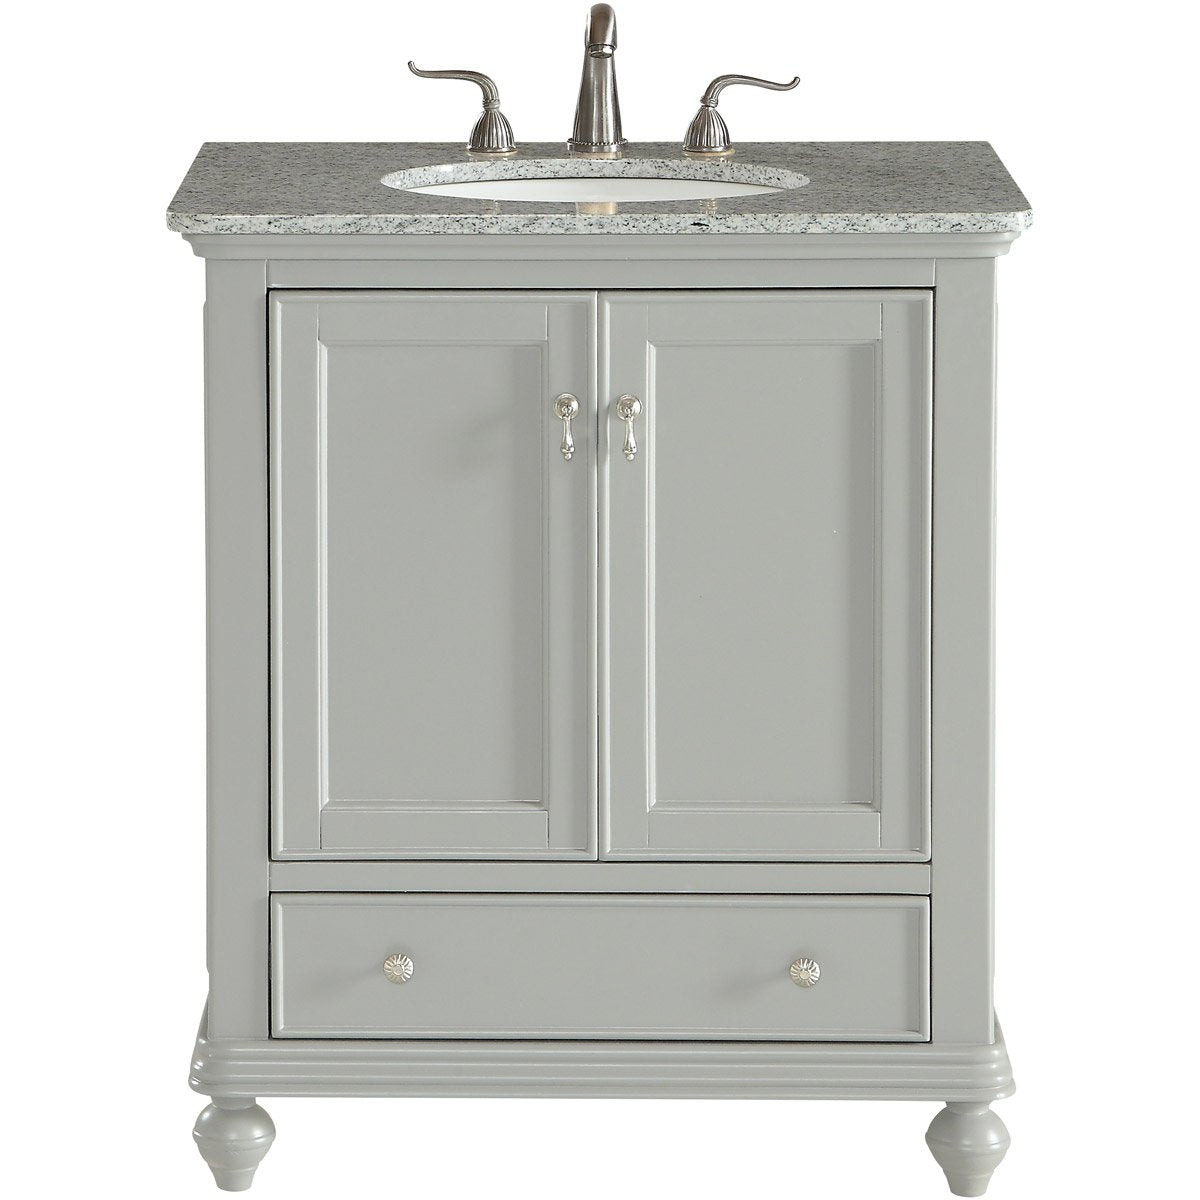 Otto 30 X 35 2 Door Vanity Cabinet - Light Grey Finish (Vf12330Gr) Vanity